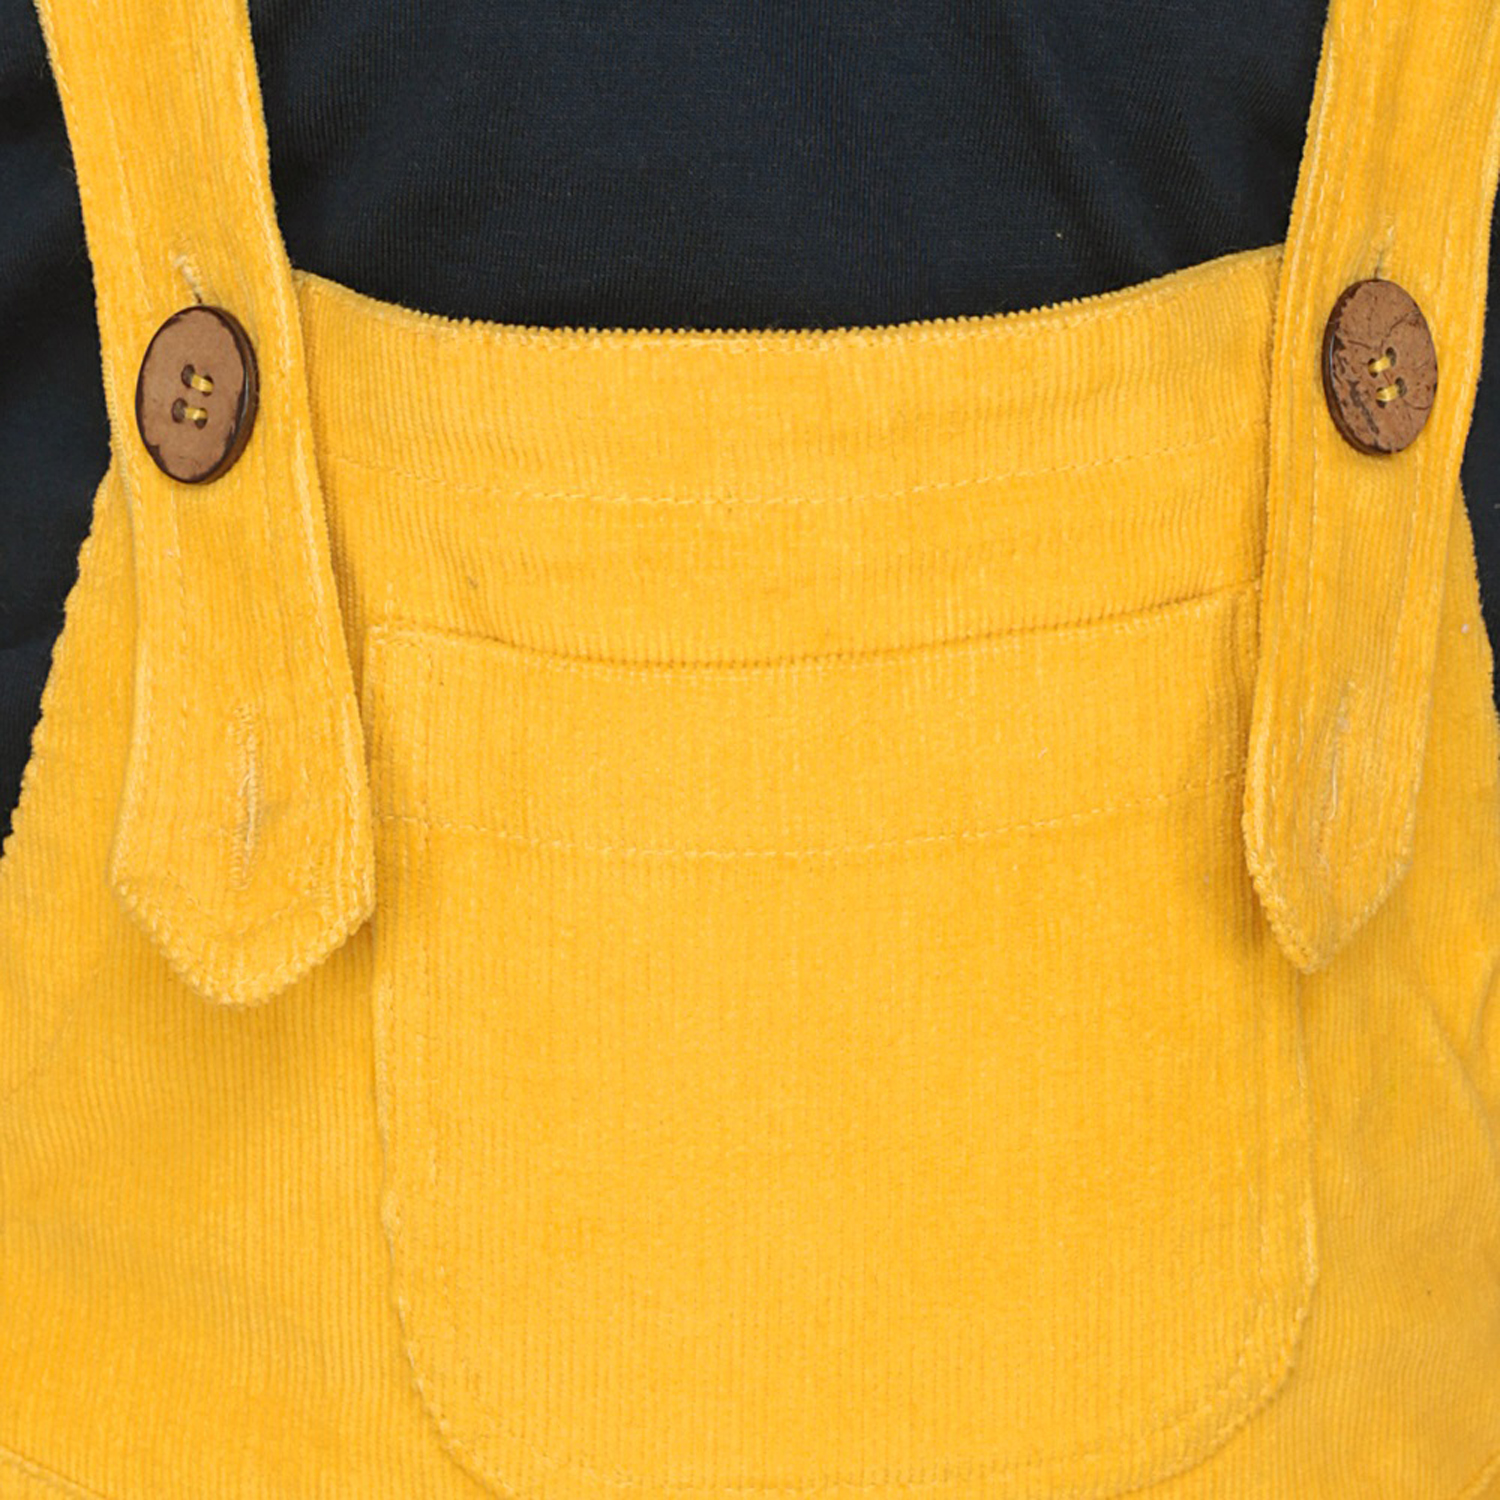 ffaa4ffa6 Olele Mustered Yellow Corduroy Dungaree For Boys   dungaree for kids ...